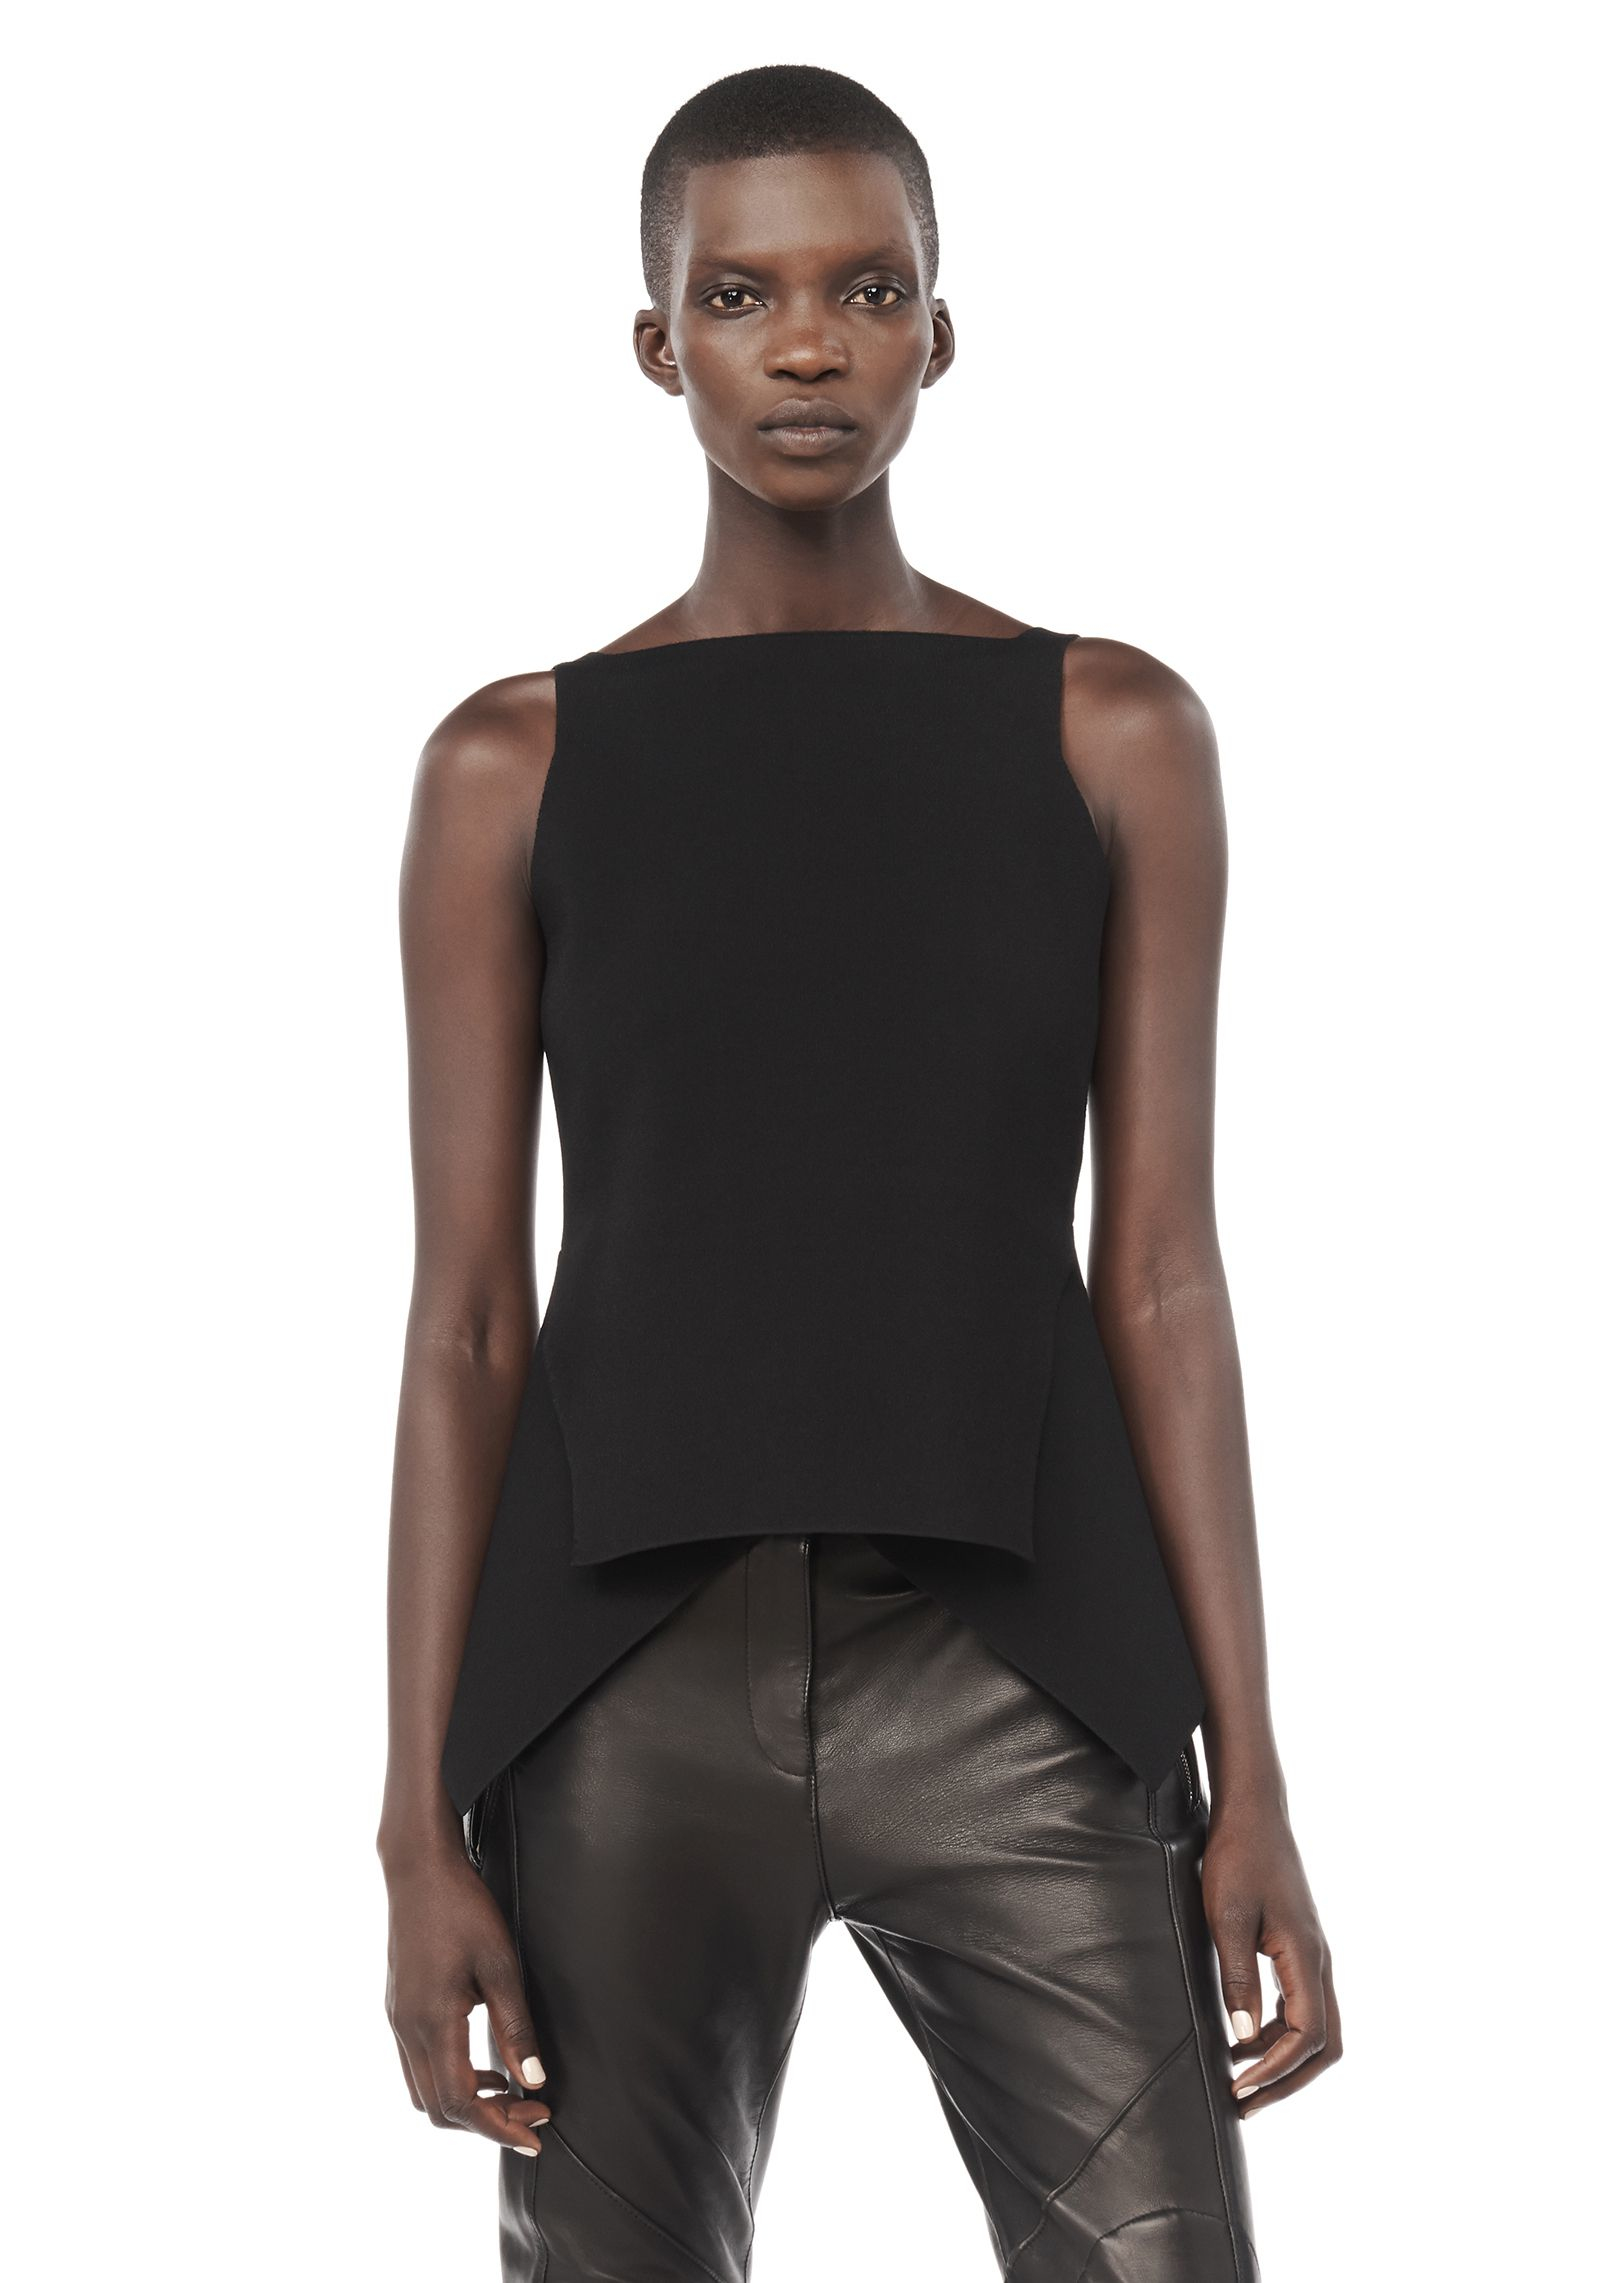 Low Price Sale Online sleeveless peplum shirt - Black Alexander Wang Pay With Paypal Sale Online Buy Cheap Brand New Unisex 8cStcuJj